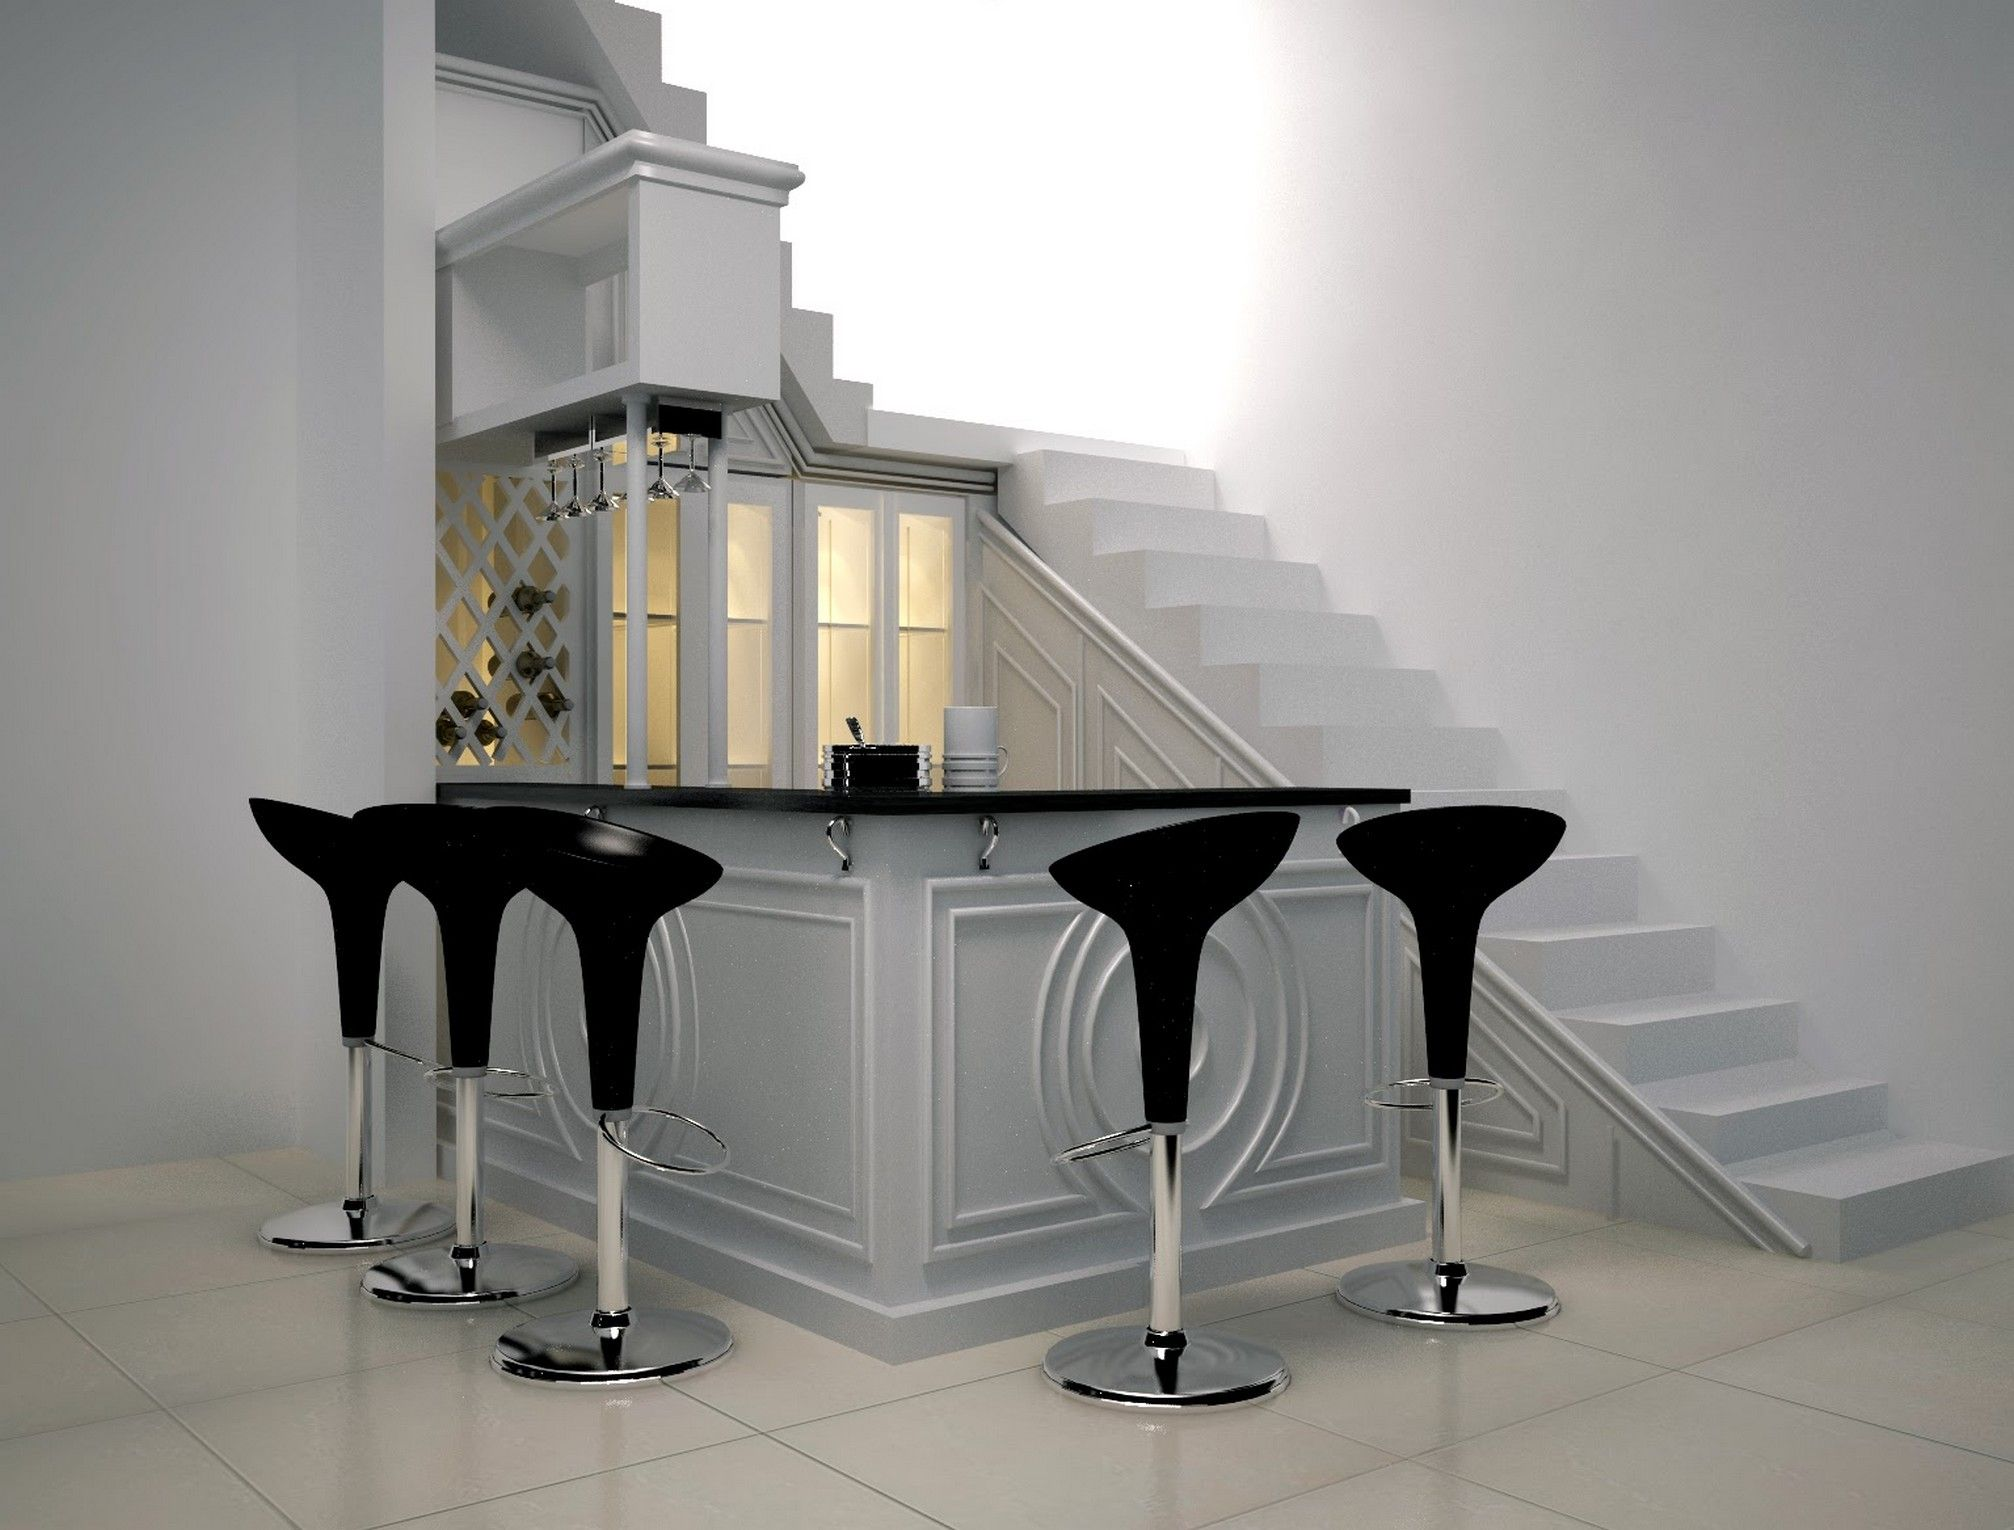 Wonderful House Bars image gallery of wonderful in house bar design 17 best ideas about home bar designs on pinterest Bar Designs